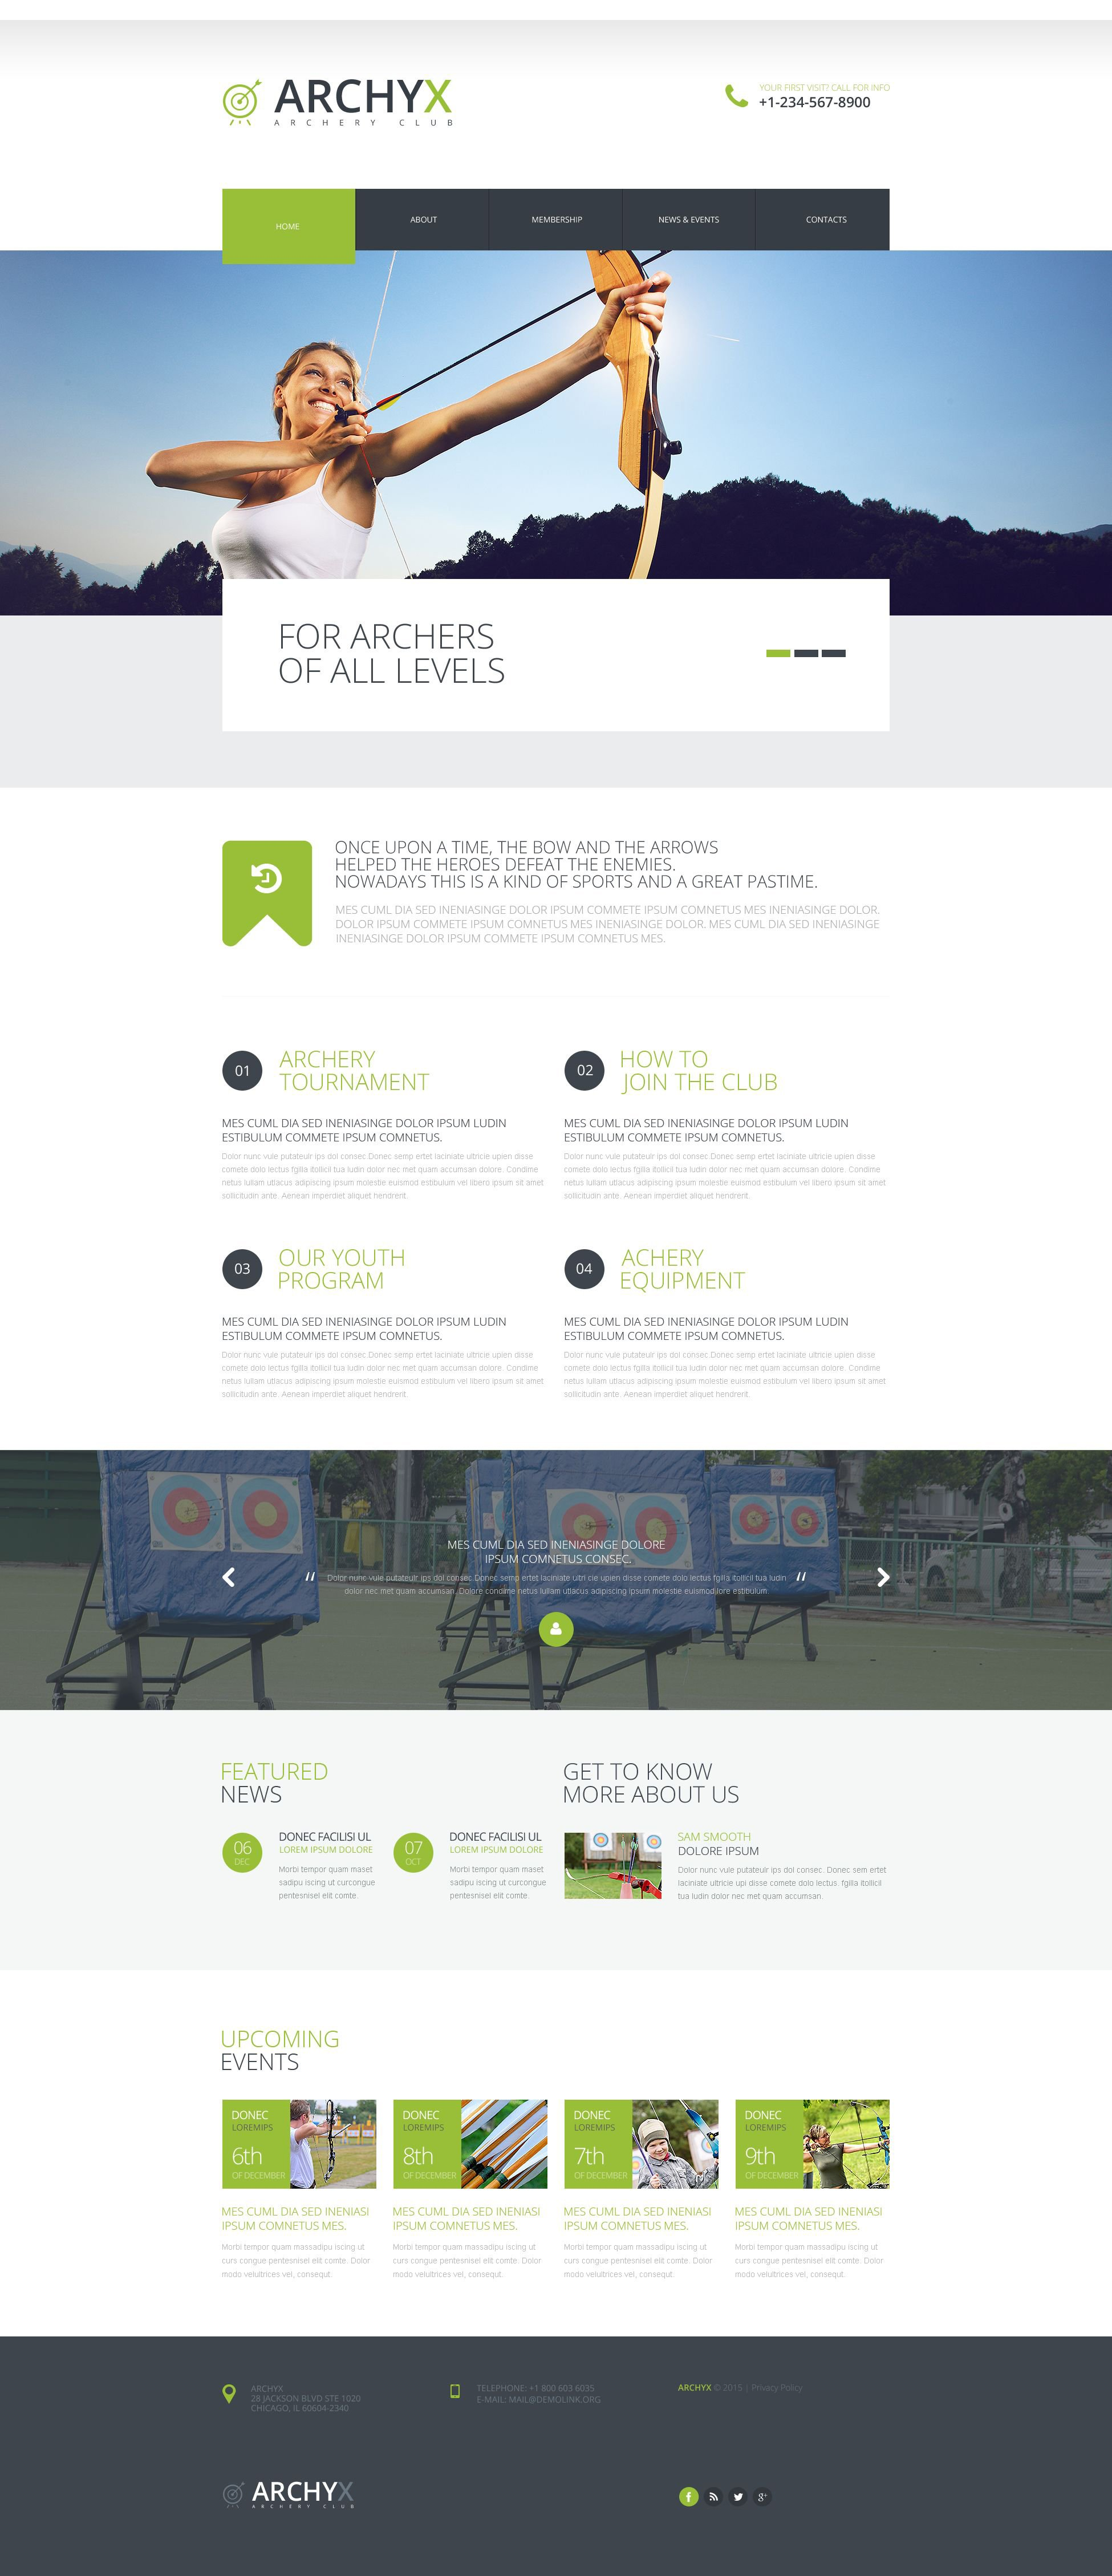 The Archyx Archery Club Responsive Javascript Animated Design 53478, one of the best website templates of its kind (sport, most popular), also known as archyx archery club website template, sport website template, arrows website template, target website template, championship website template, beginners website template, courses website template, rounds website template, rules website template, coacher website template, training website template, shoot website template, bow website template, members website template, competitors website template, equipment website template, gear website template, strings website template, tools website template, netting website template, scope website template, stabilizer website template, compound website template, recurve website template, schedule website template, match website template, statistic website template, fan website template, media website template, ticket website template, interview and related with archyx archery club, sport, arrows, target, championship, beginners, courses, rounds, rules, coacher, training, shoot, bow, members, competitors, equipment, gear, strings, tools, netting, scope, stabilizer, compound, recurve, schedule, match, statistic, fan, media, ticket, interview, etc.